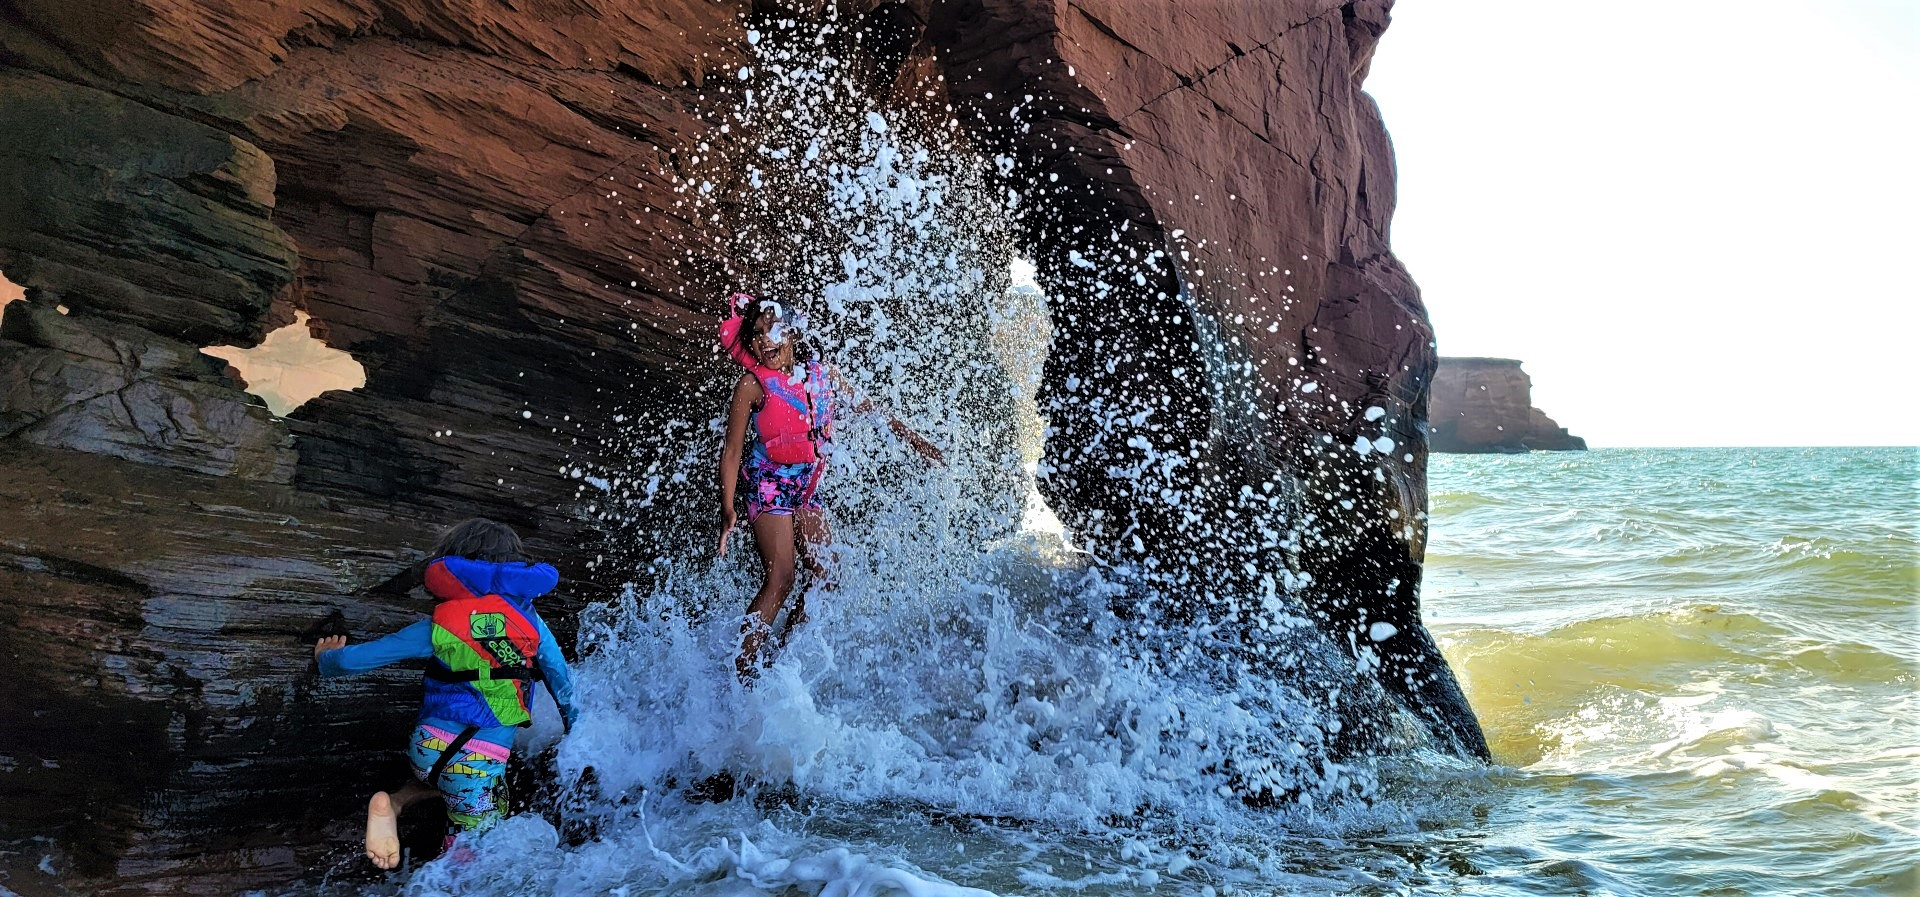 kids splashed by a wave in a red cave